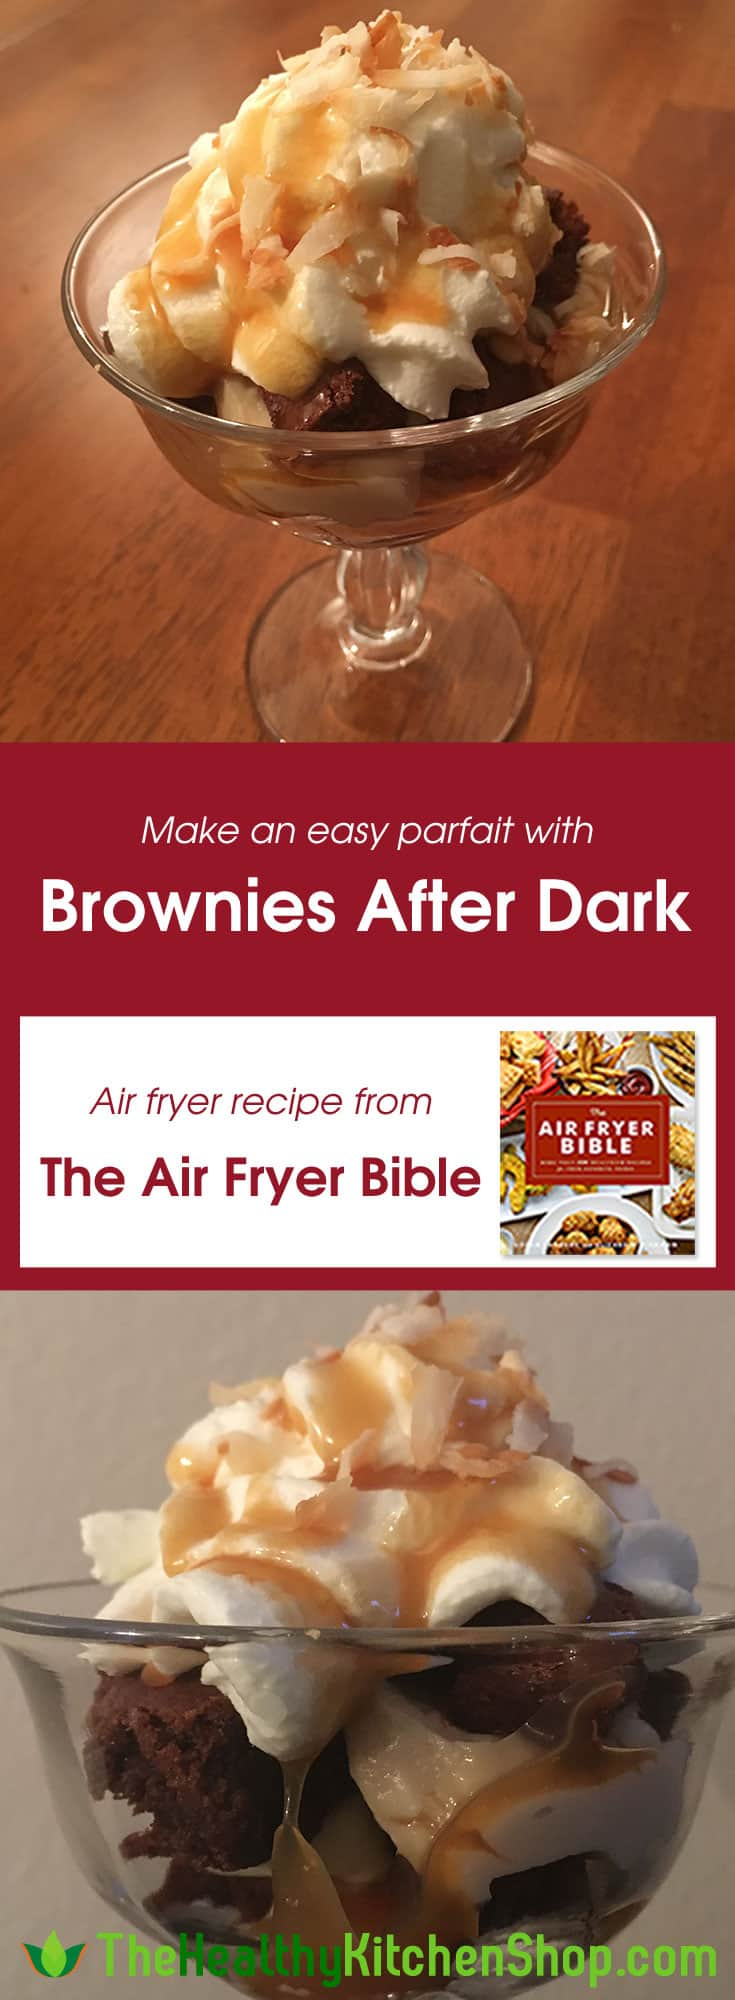 Make an easy parfait with Brownies After Dark,, air fryer recipe from The Air Fryer Bible, TheHealtyKitchenShop.com